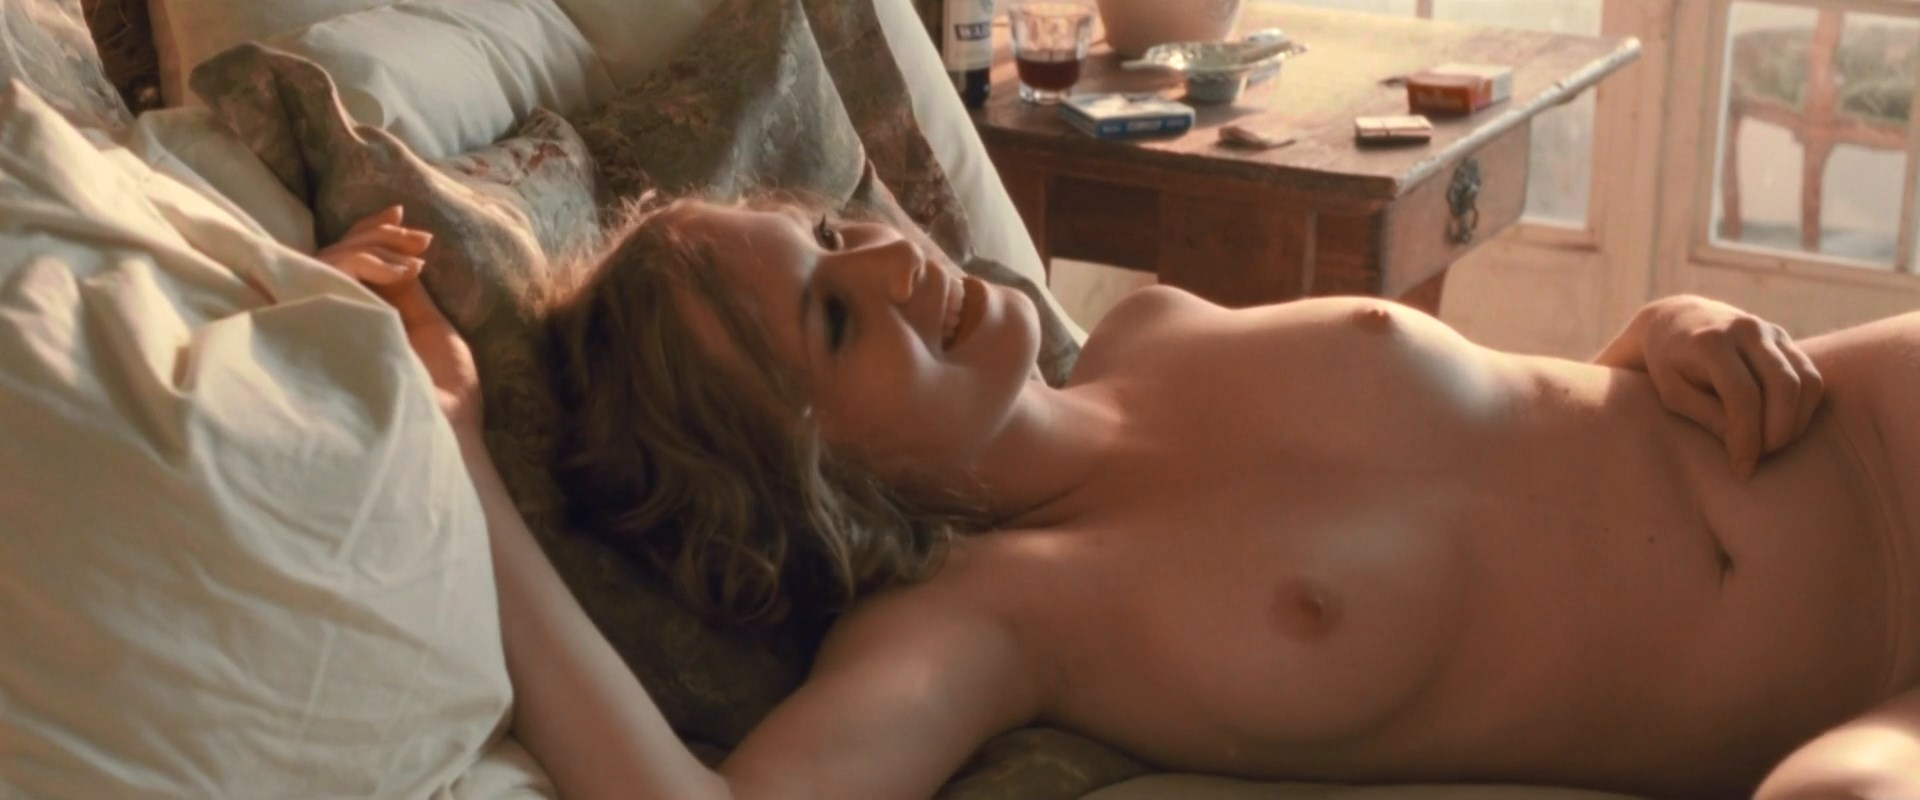 Capuccine delaby nude excited